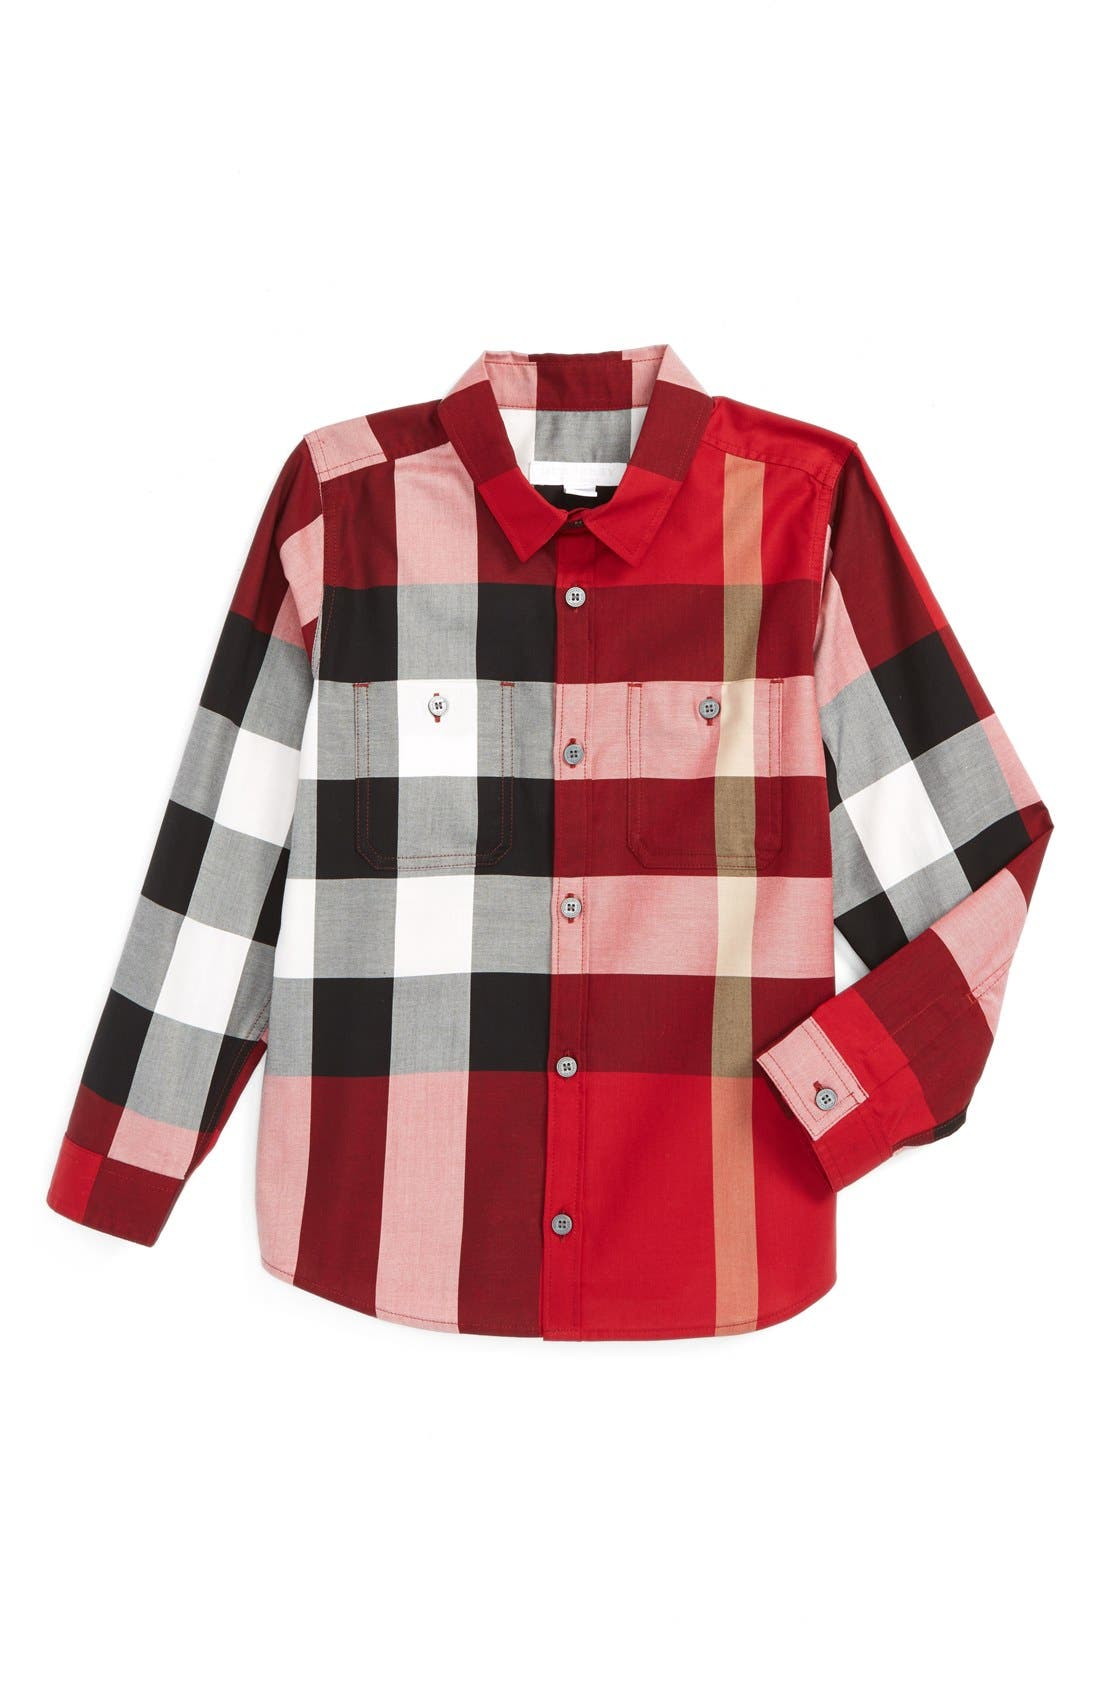 Main Image - Burberry 'Mini Camber' Check Long Sleeve Shirt (Toddler Boys, Little Boys & Big Boys)